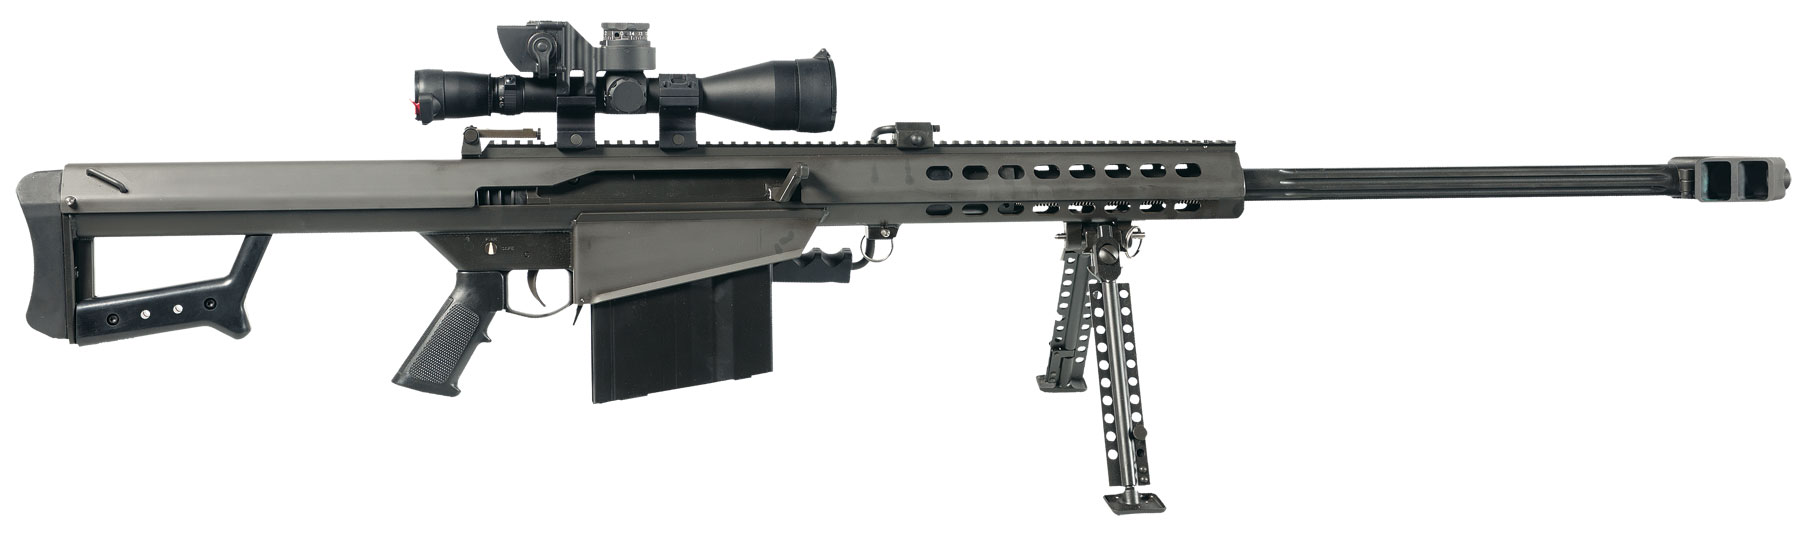 m107 sniper rifle - photo #43